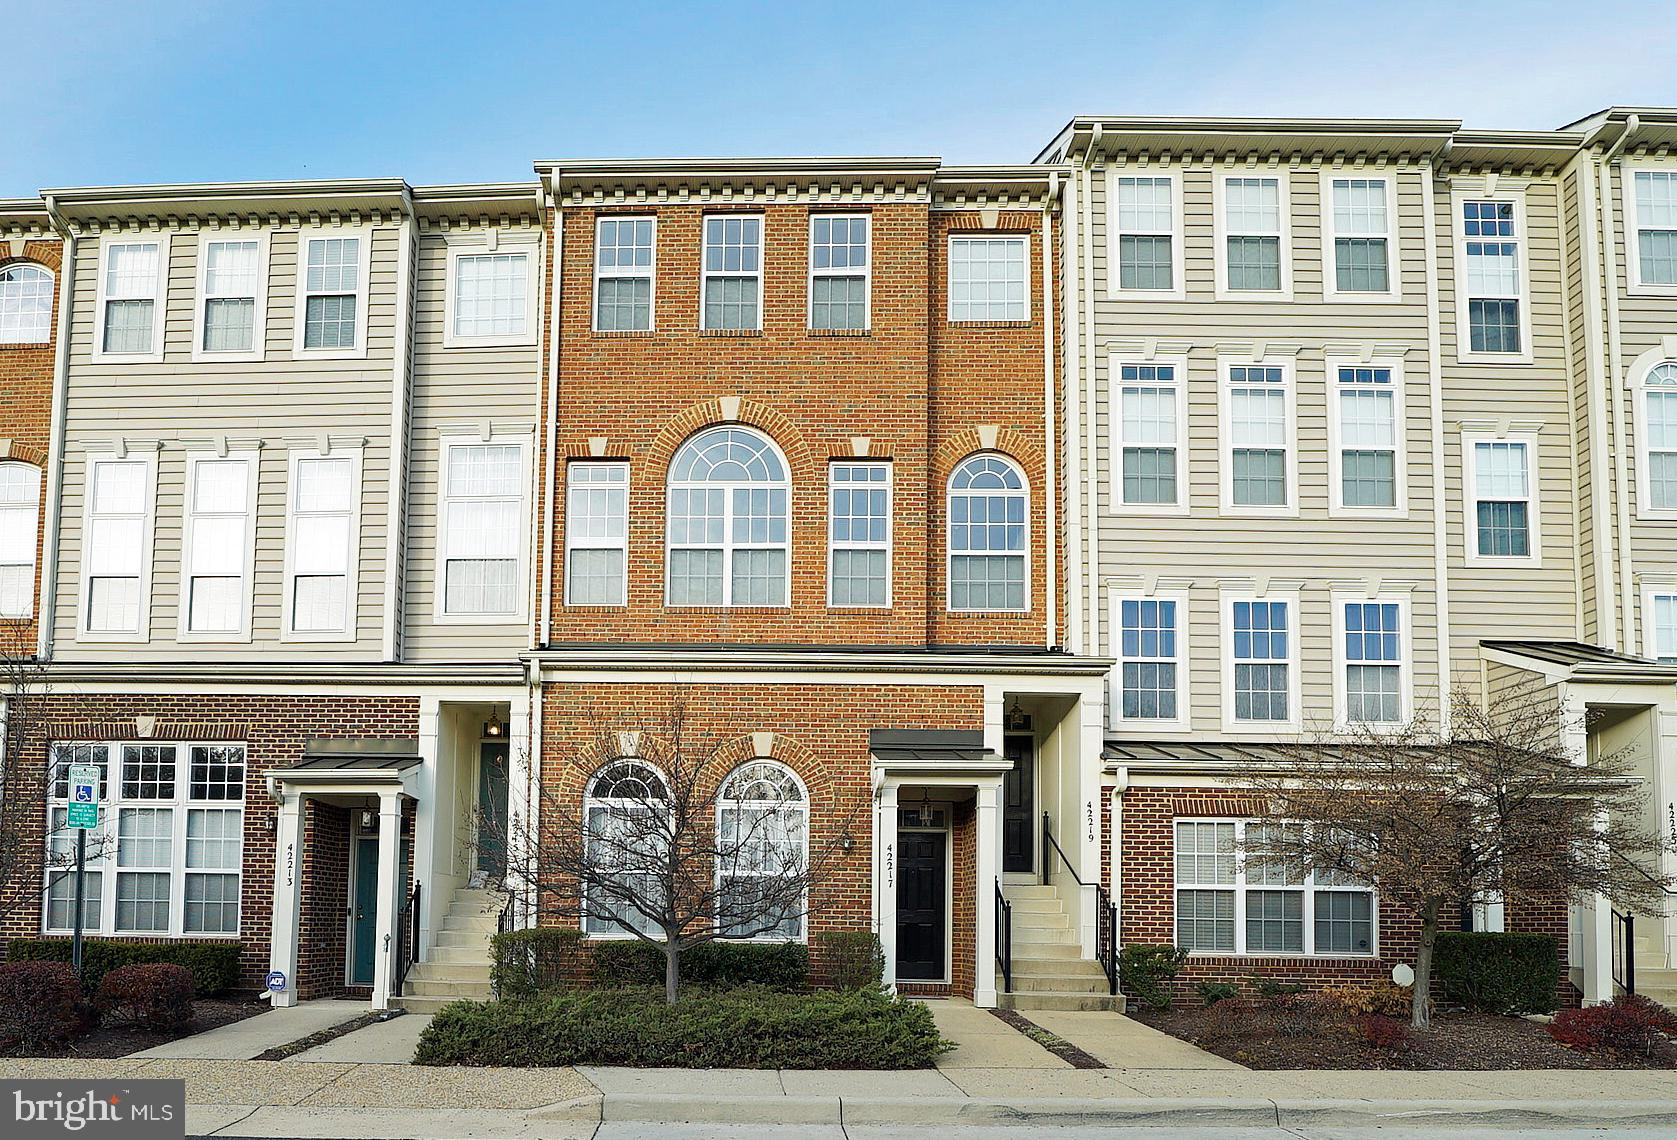 Stunning 2 bedroom 2.5 garage townhouse style condo in popular Amber Spring in Stone Ridge!  Vaulted